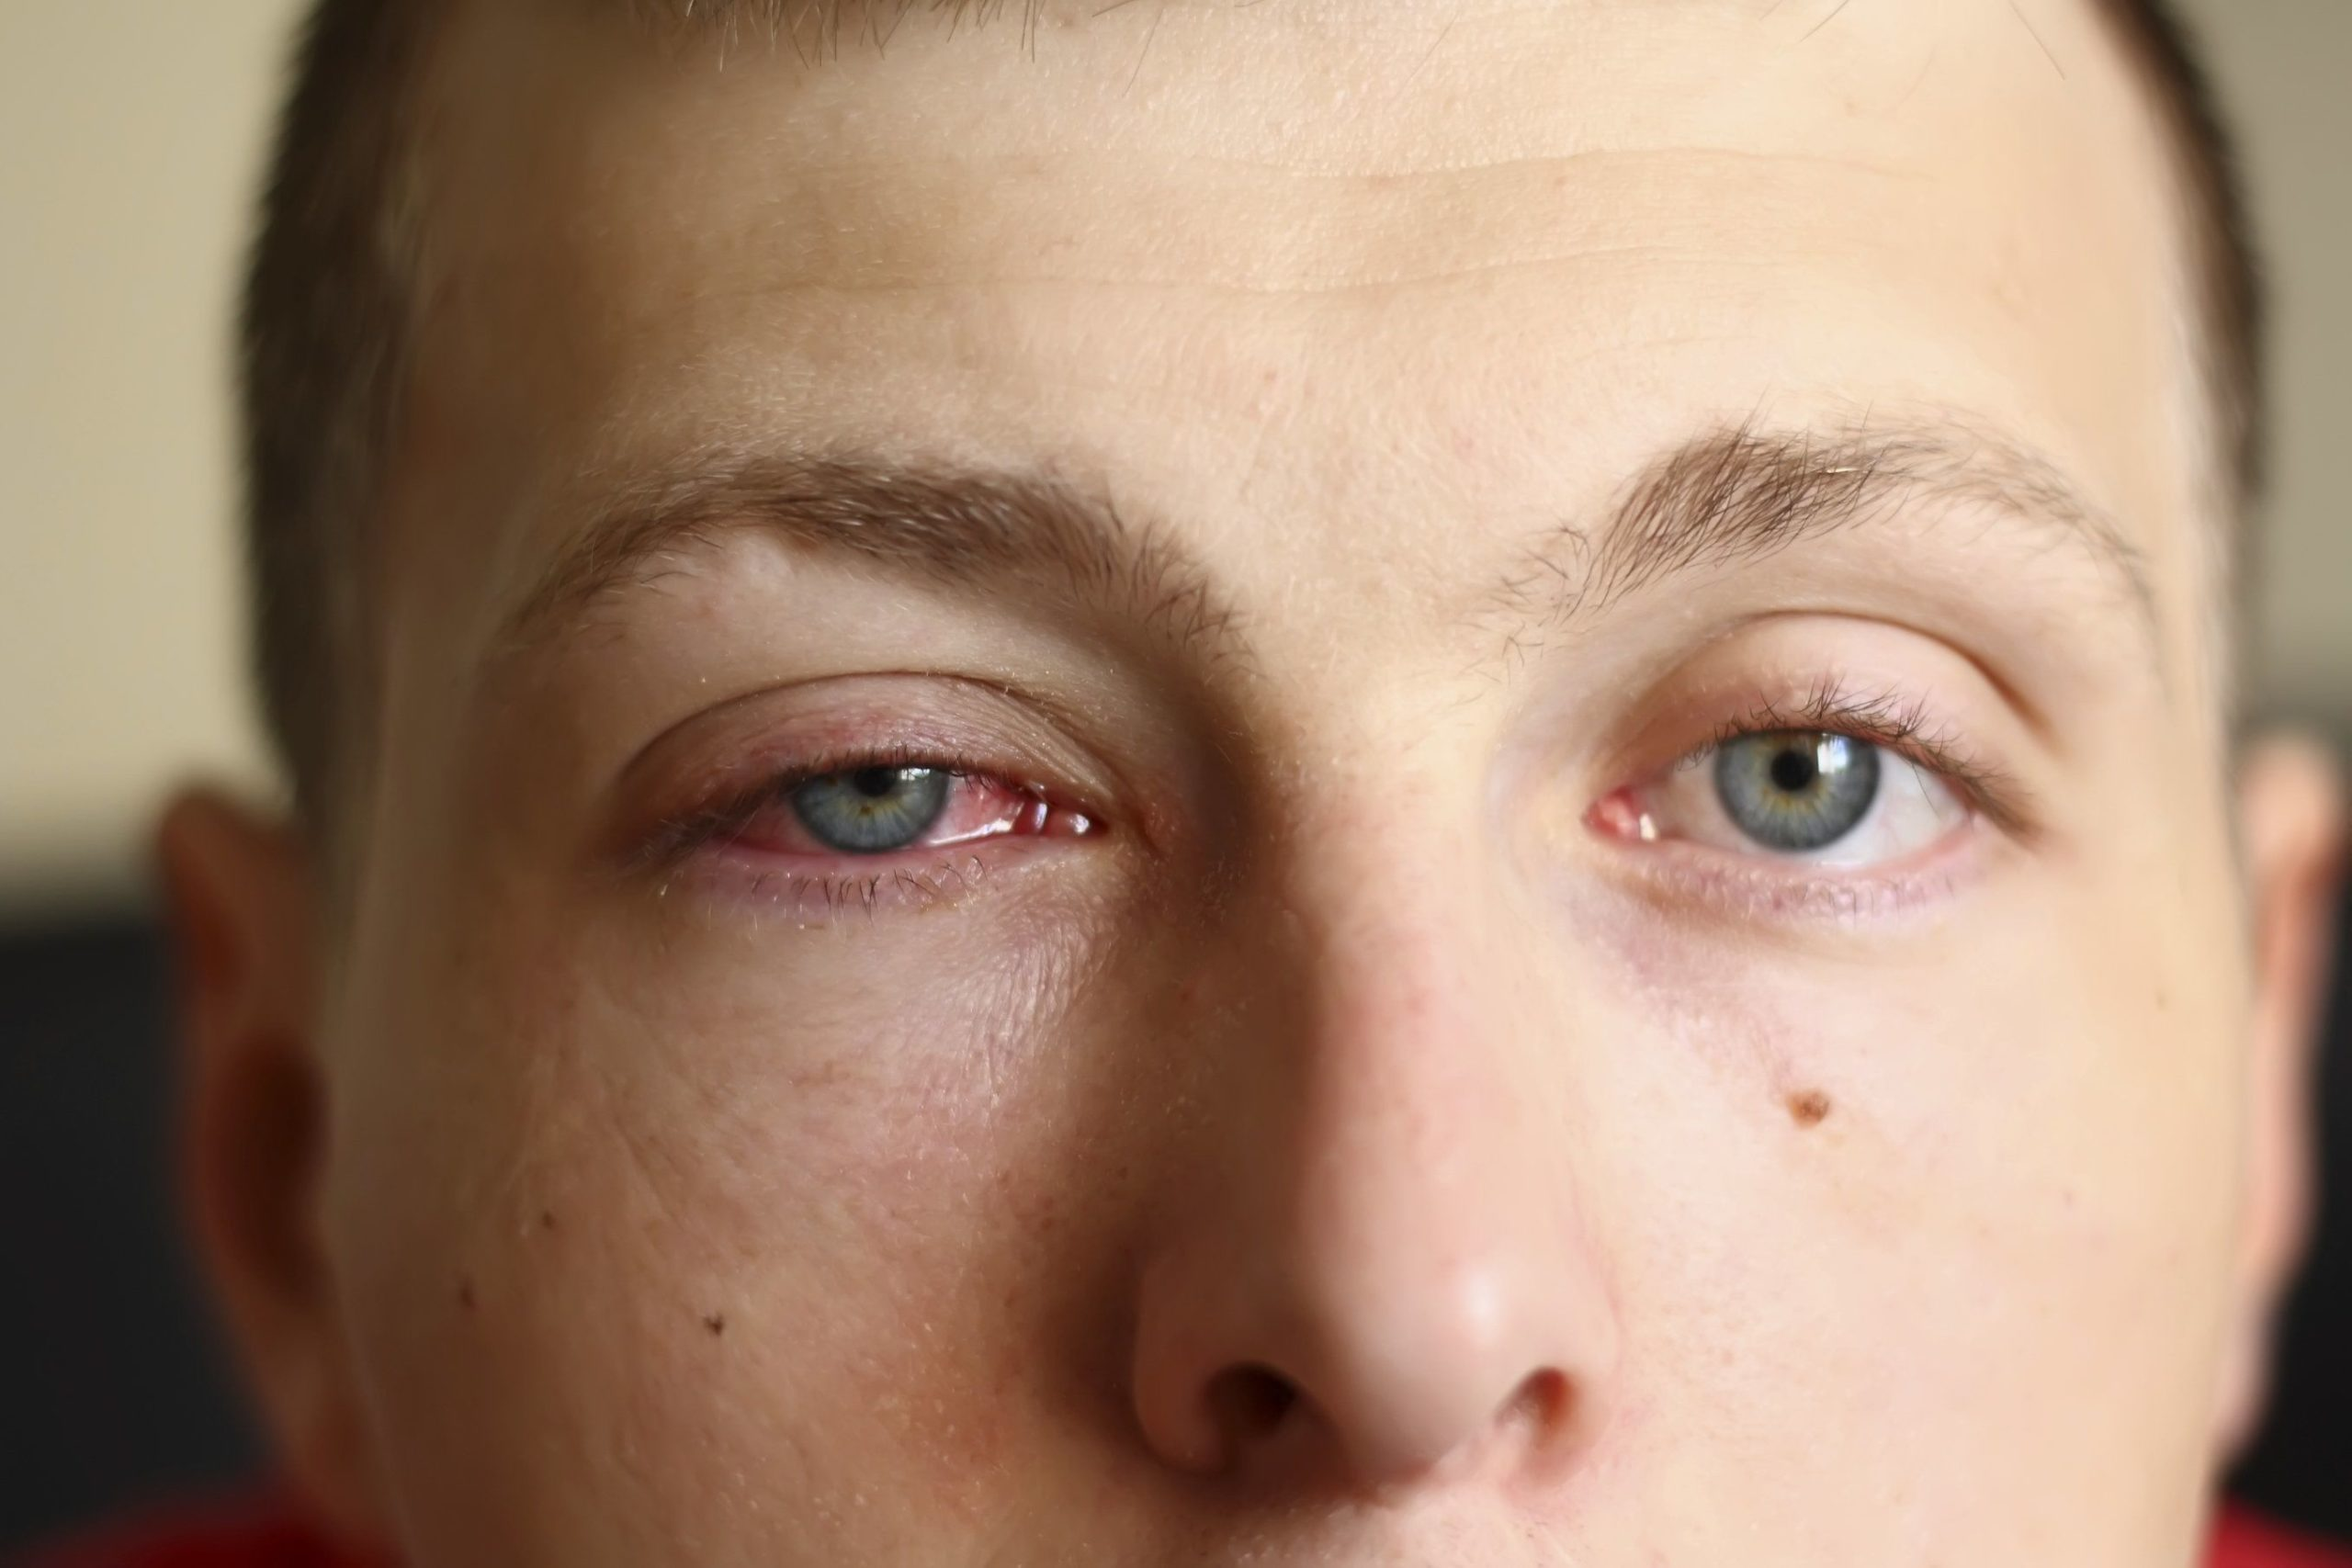 Painful Swelling Of The Cheek Under The Eyelid?